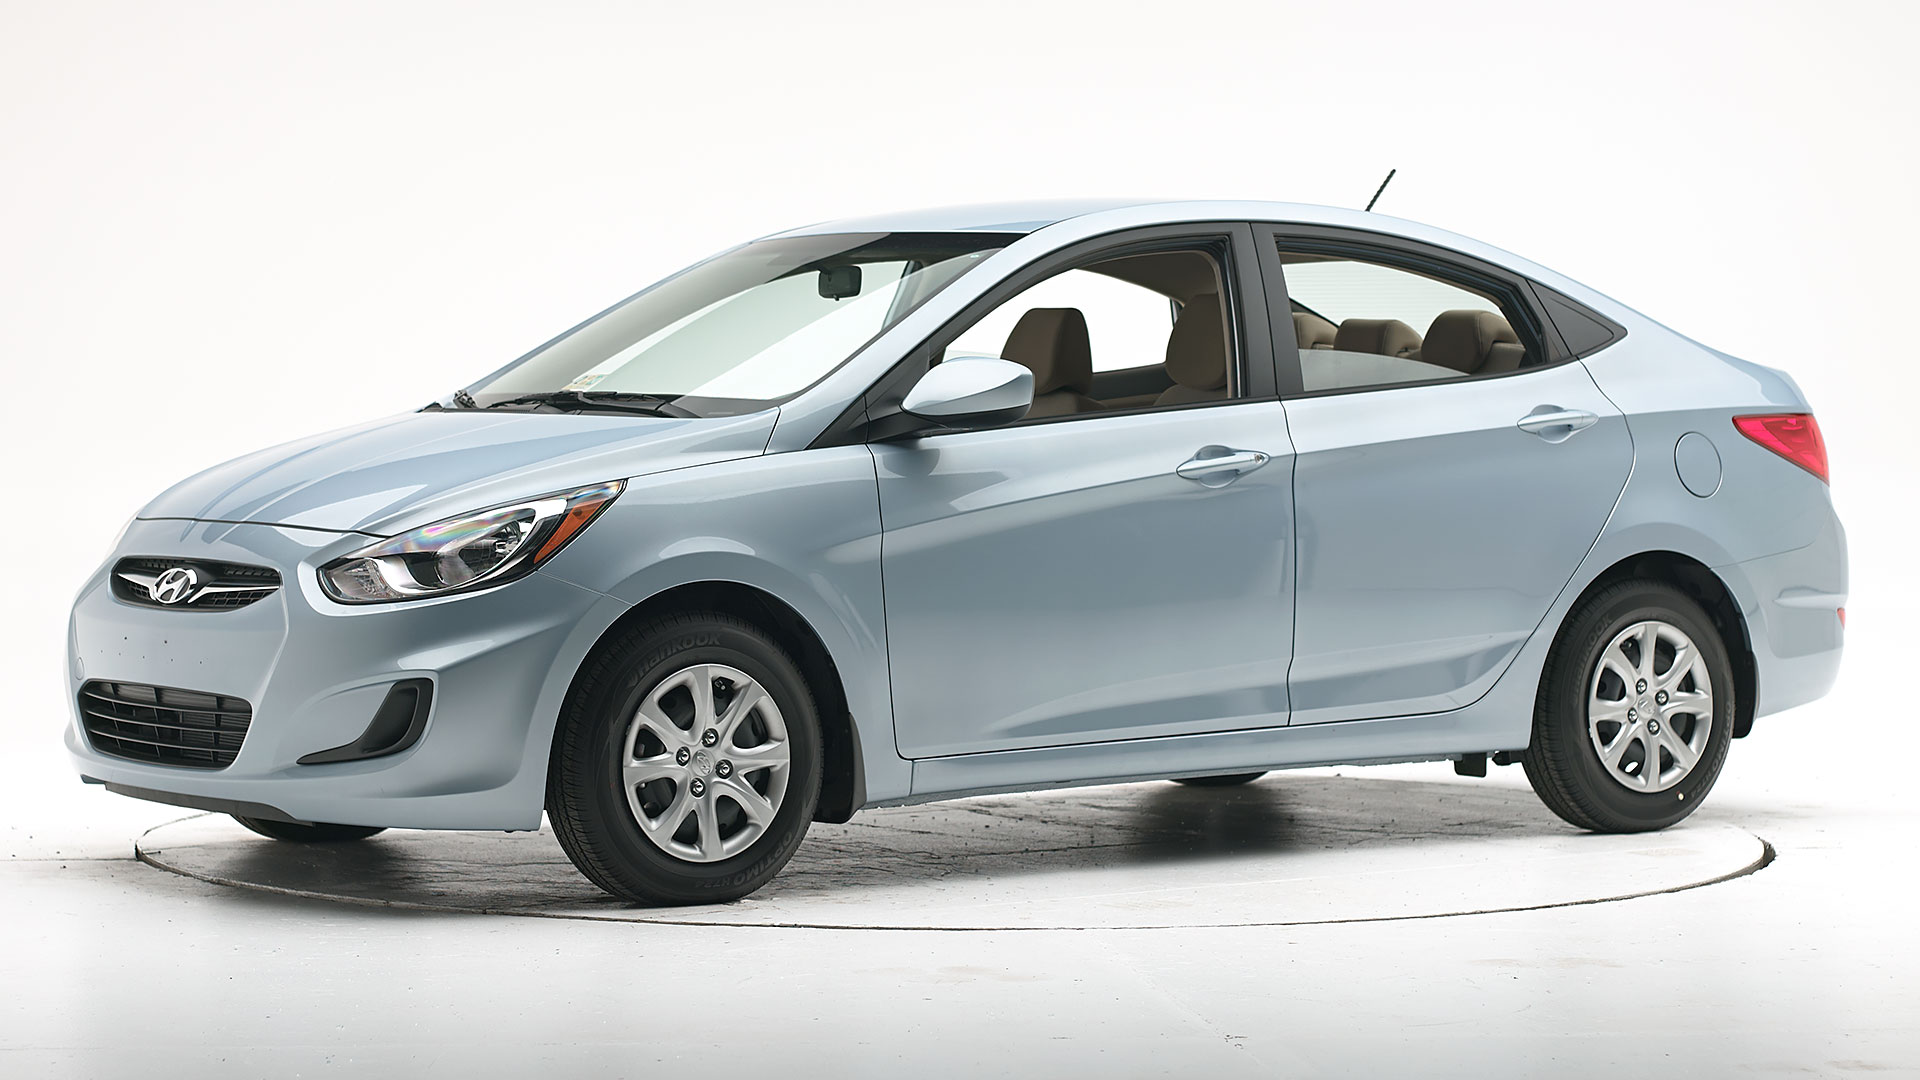 2013 Hyundai Accent 4-door sedan